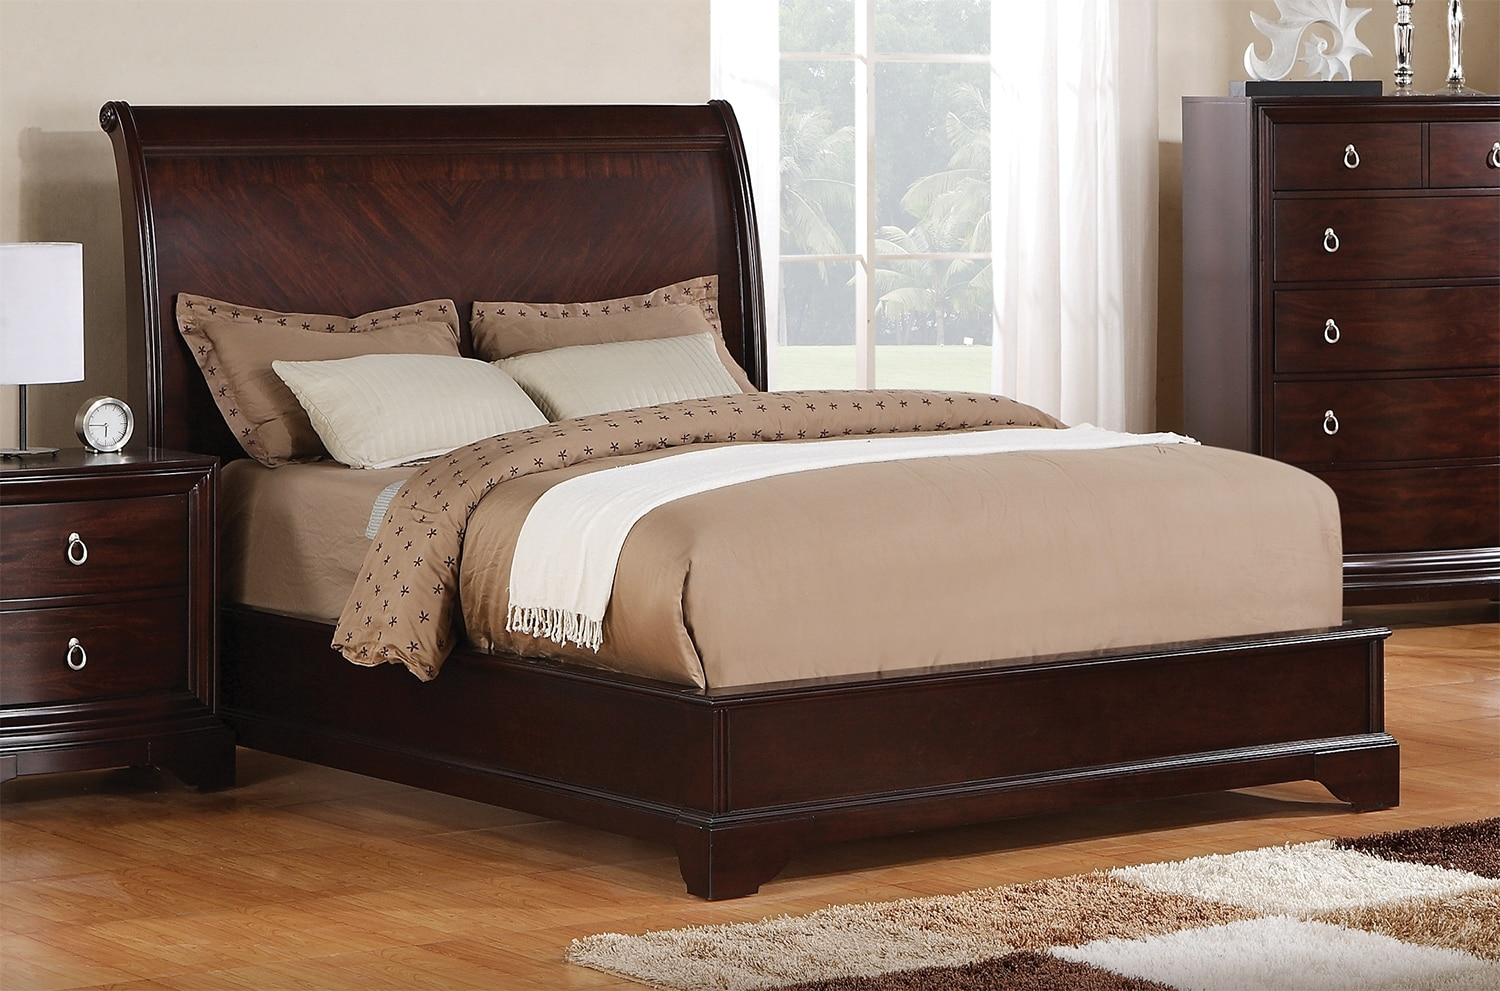 Queen size bed leon 39 s How to buy a bed